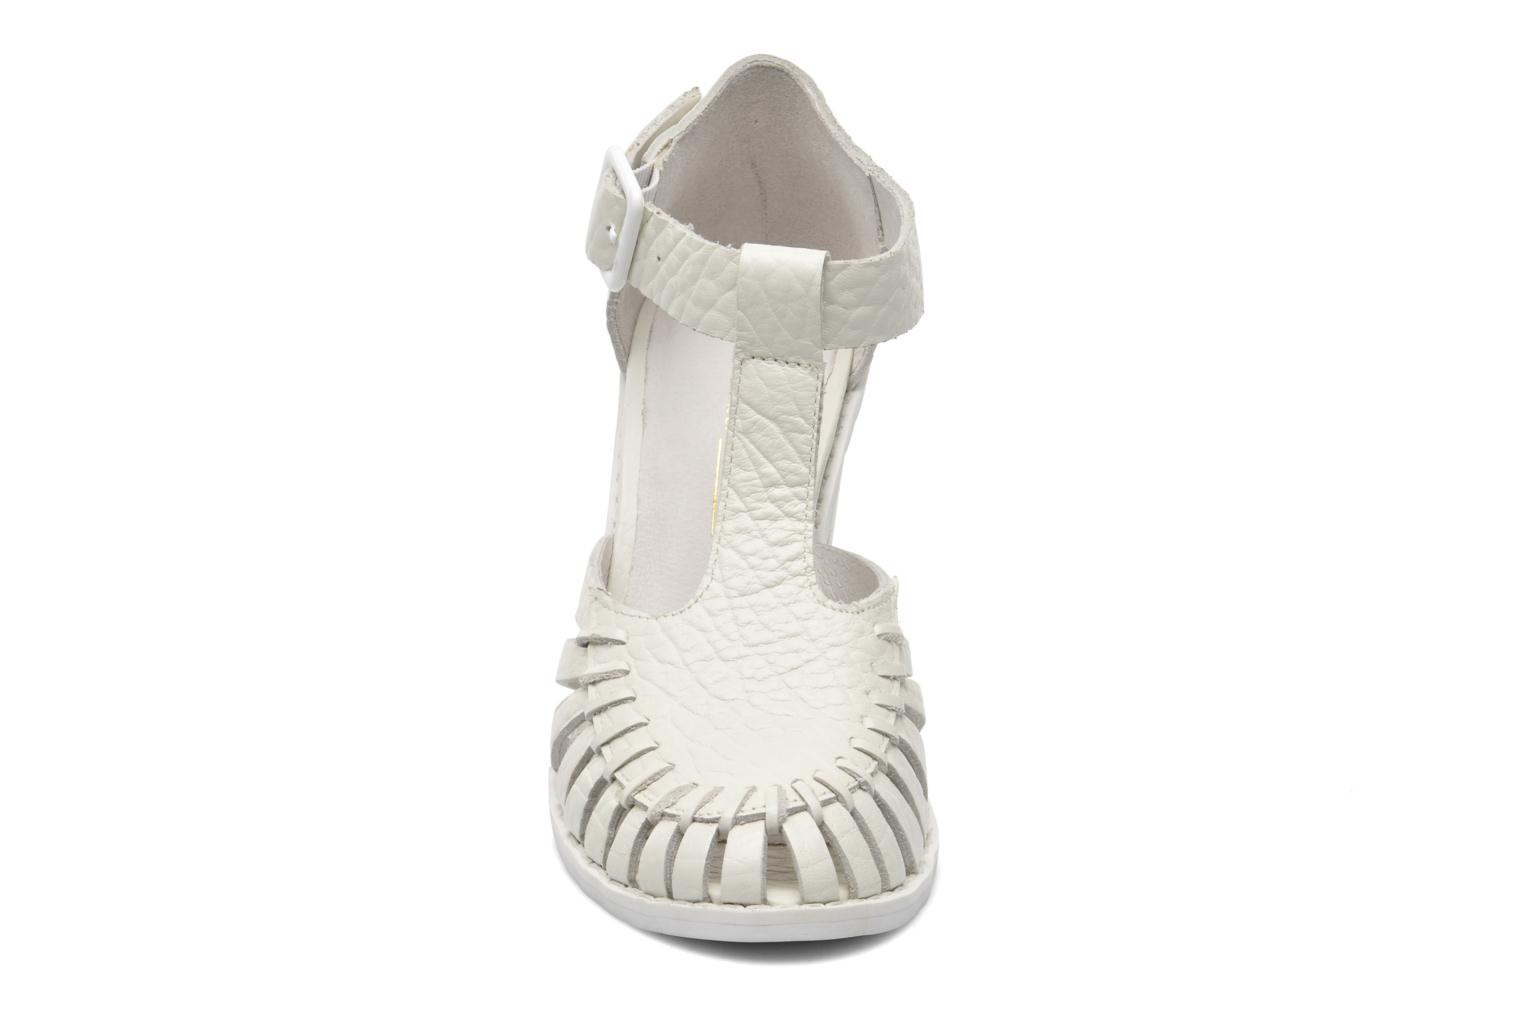 Sandales et nu-pieds Intentionally blank Tilted Blanc vue portées chaussures